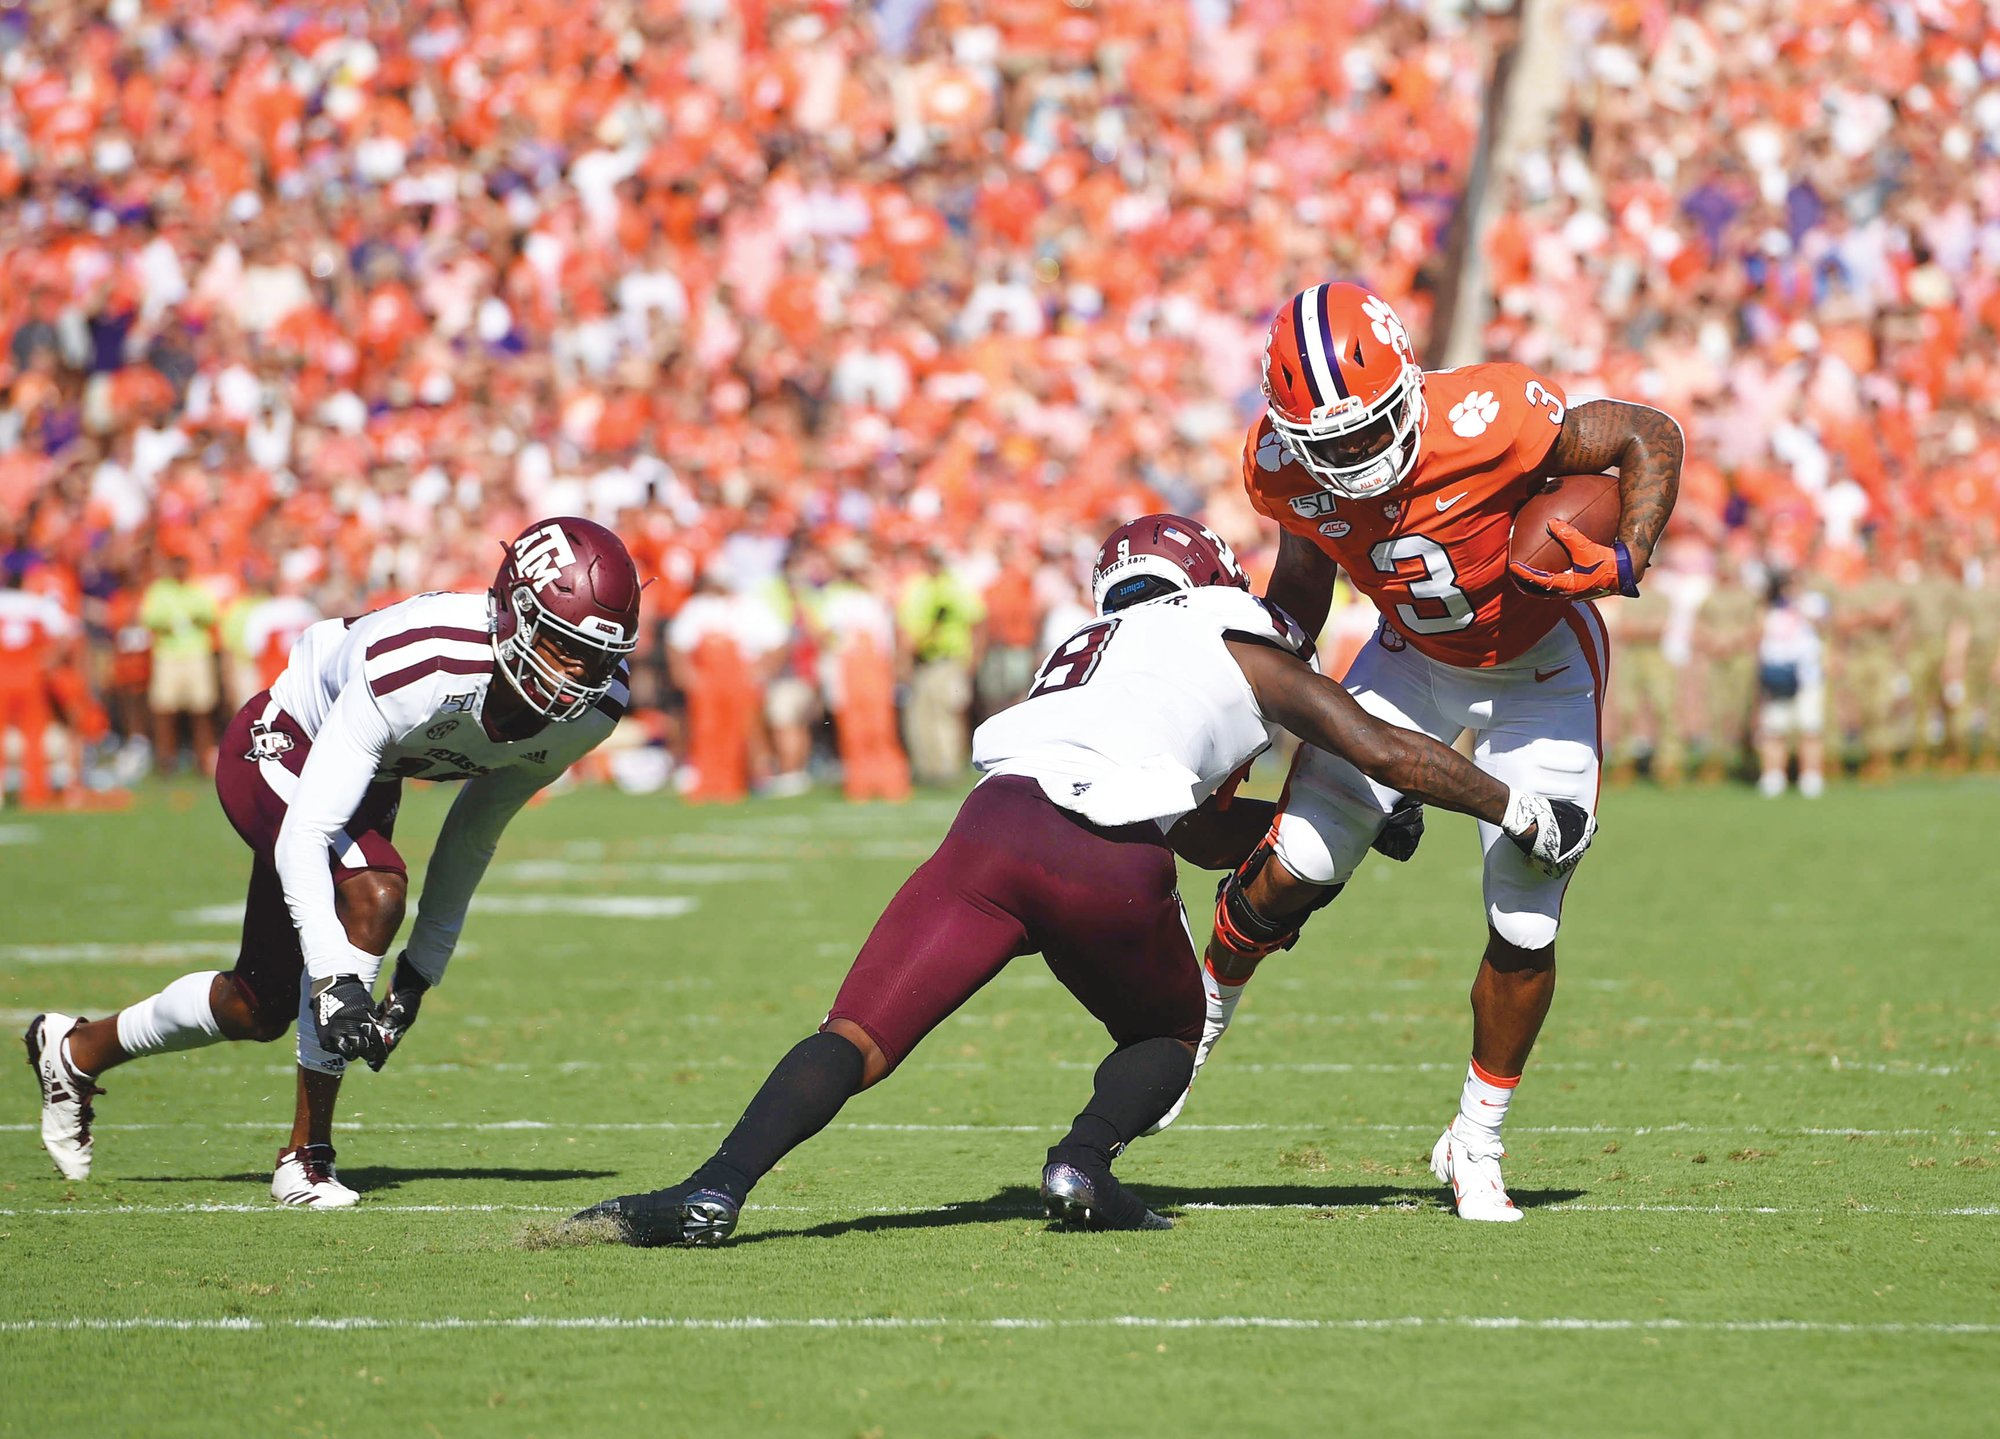 Clemson's Amari Rodgers (3) rushes while defended by Texas A&M's Leon O'Neal Jr. during the second half of an NCAA college football game Saturday, Sept. 7, 2019, in Clemson, S.C. Clemson won 24-10.